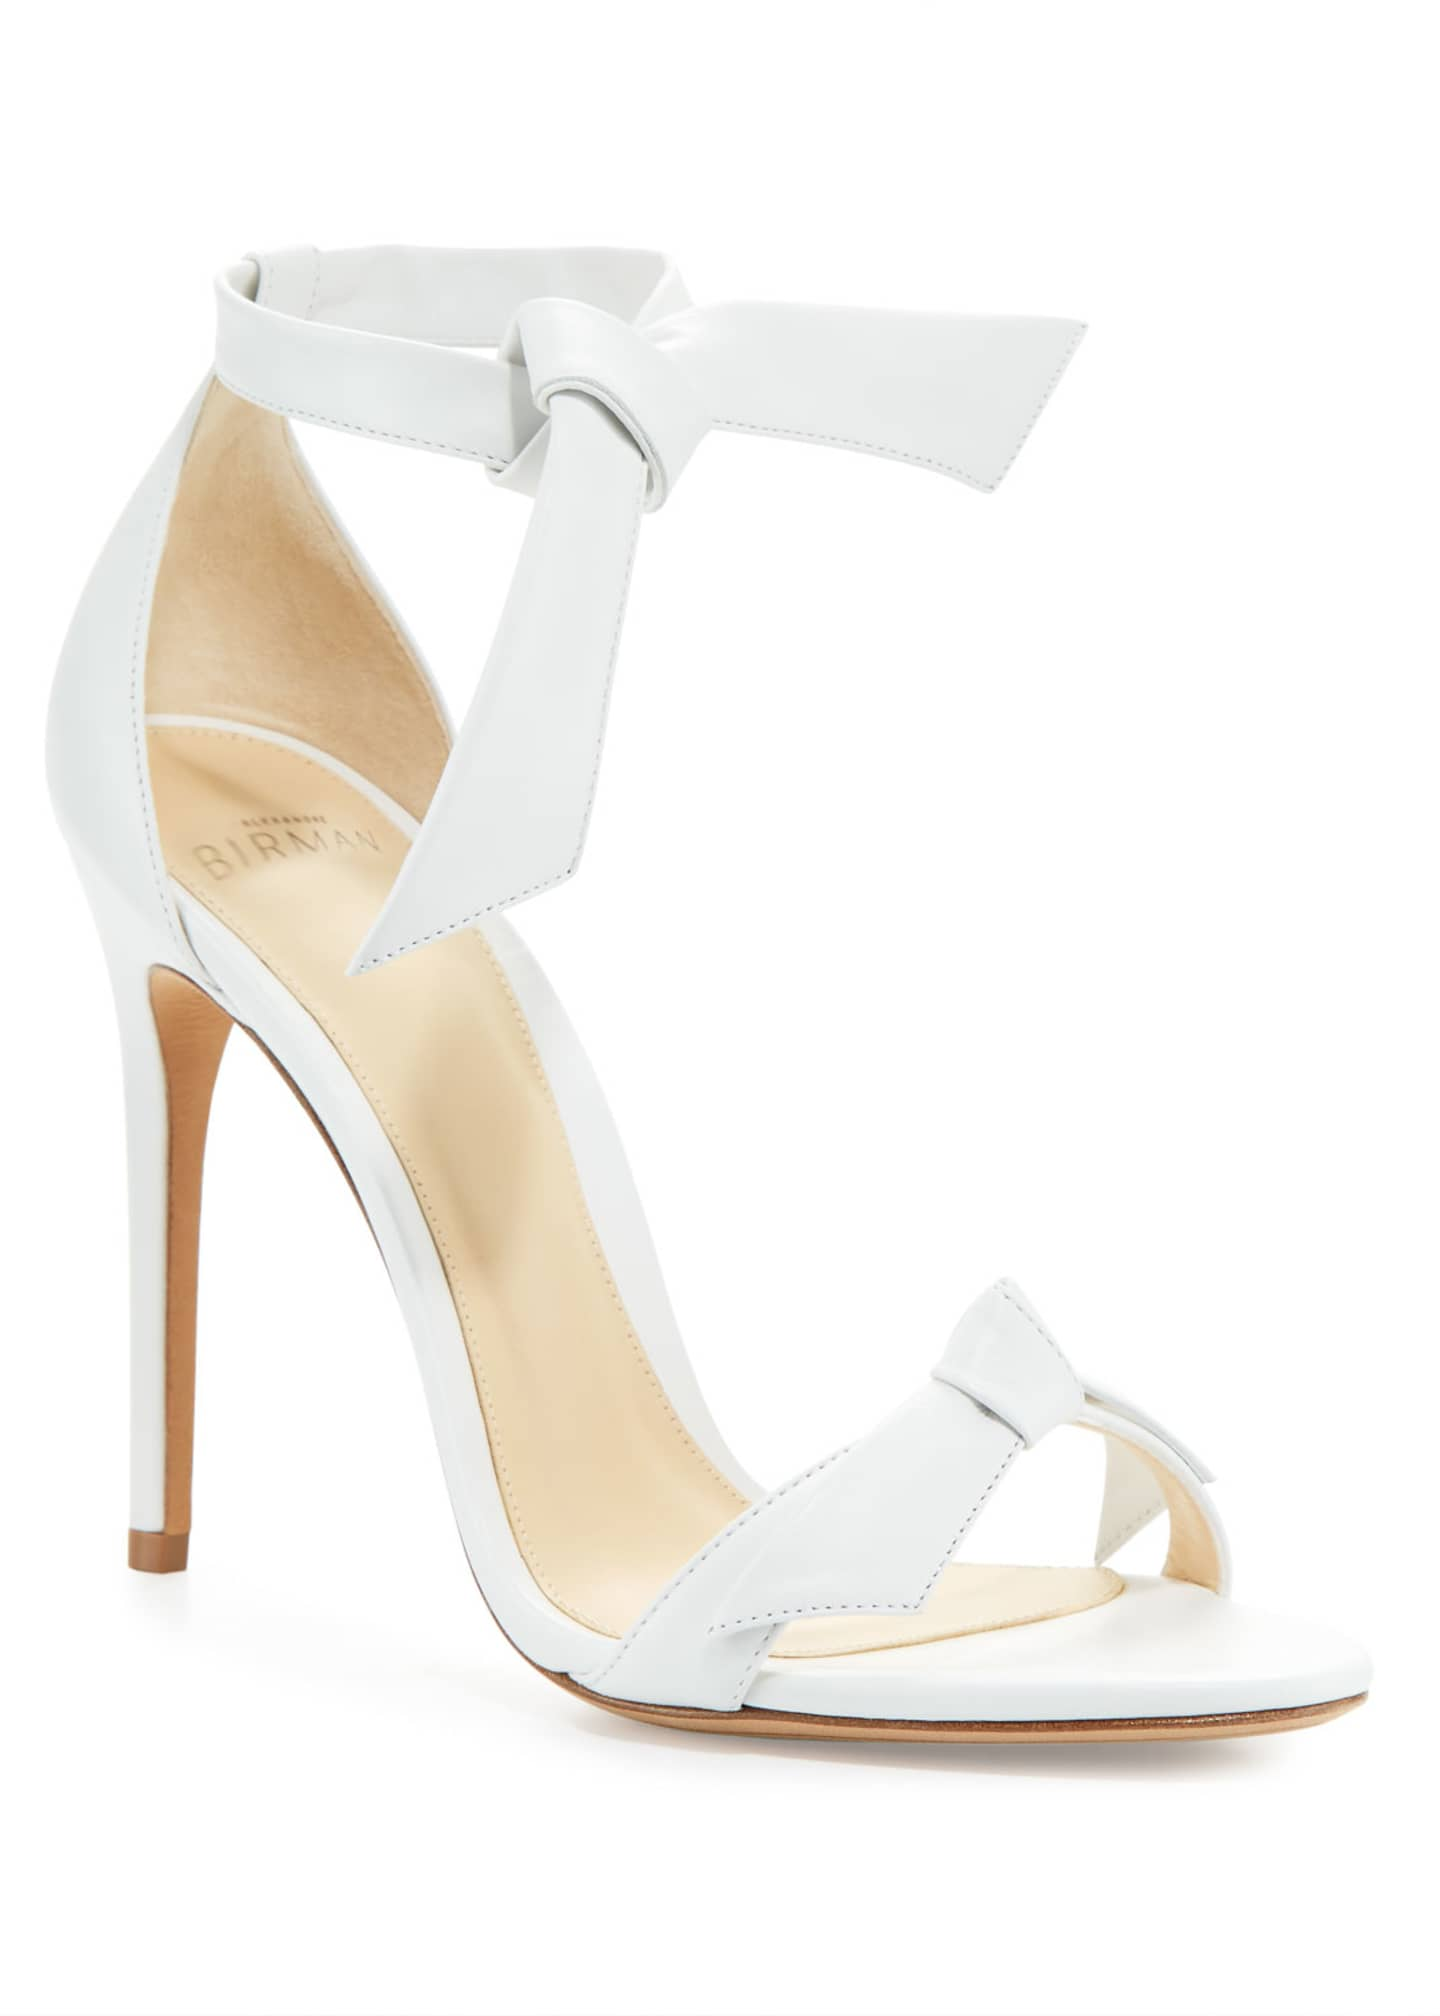 Alexandre Birman Clarita Knotted Leather Sandal, White